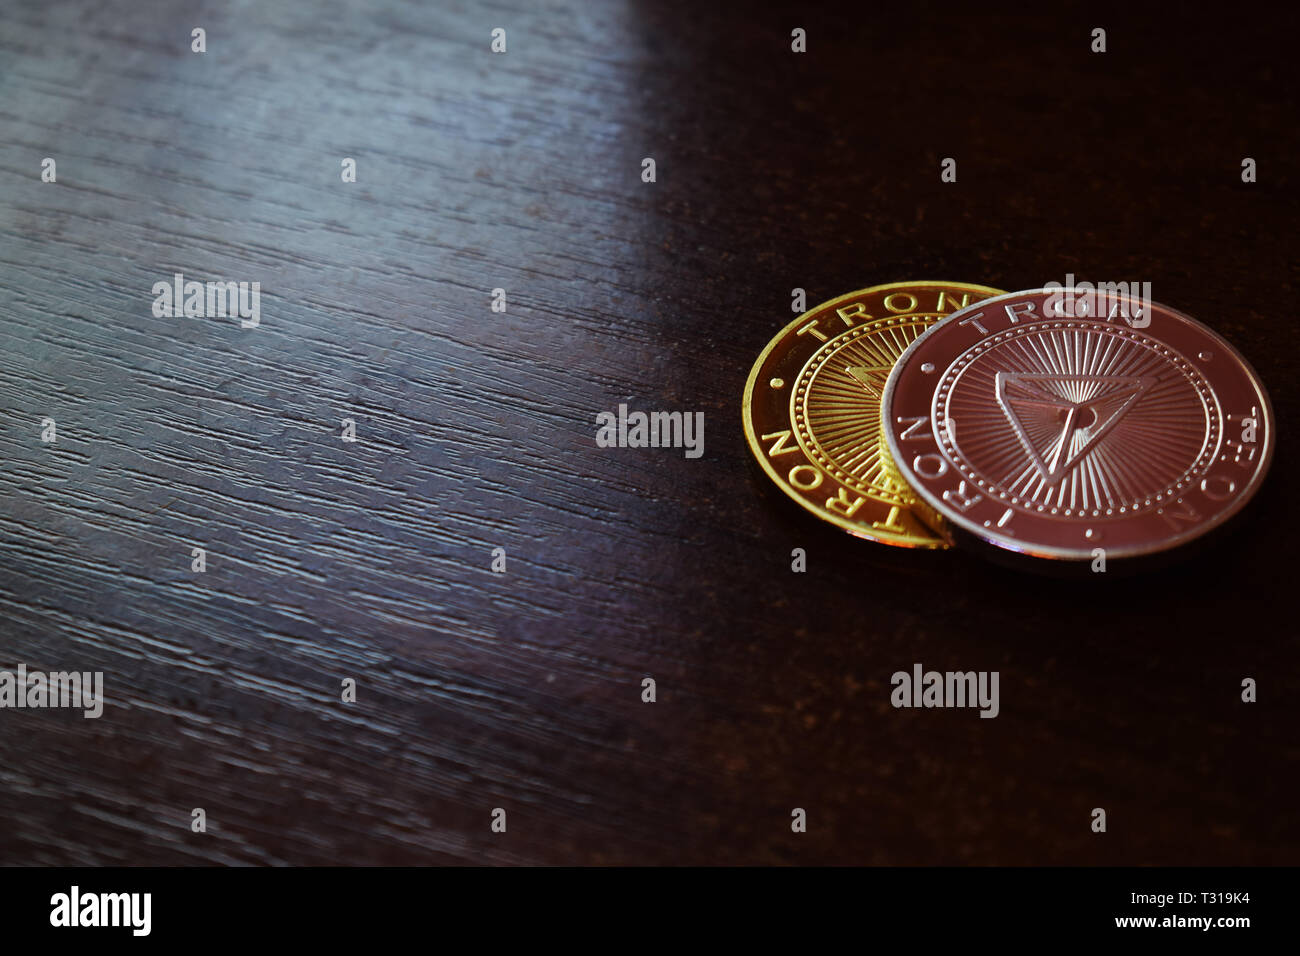 Tron coins on wooden background  Digital money  Free text